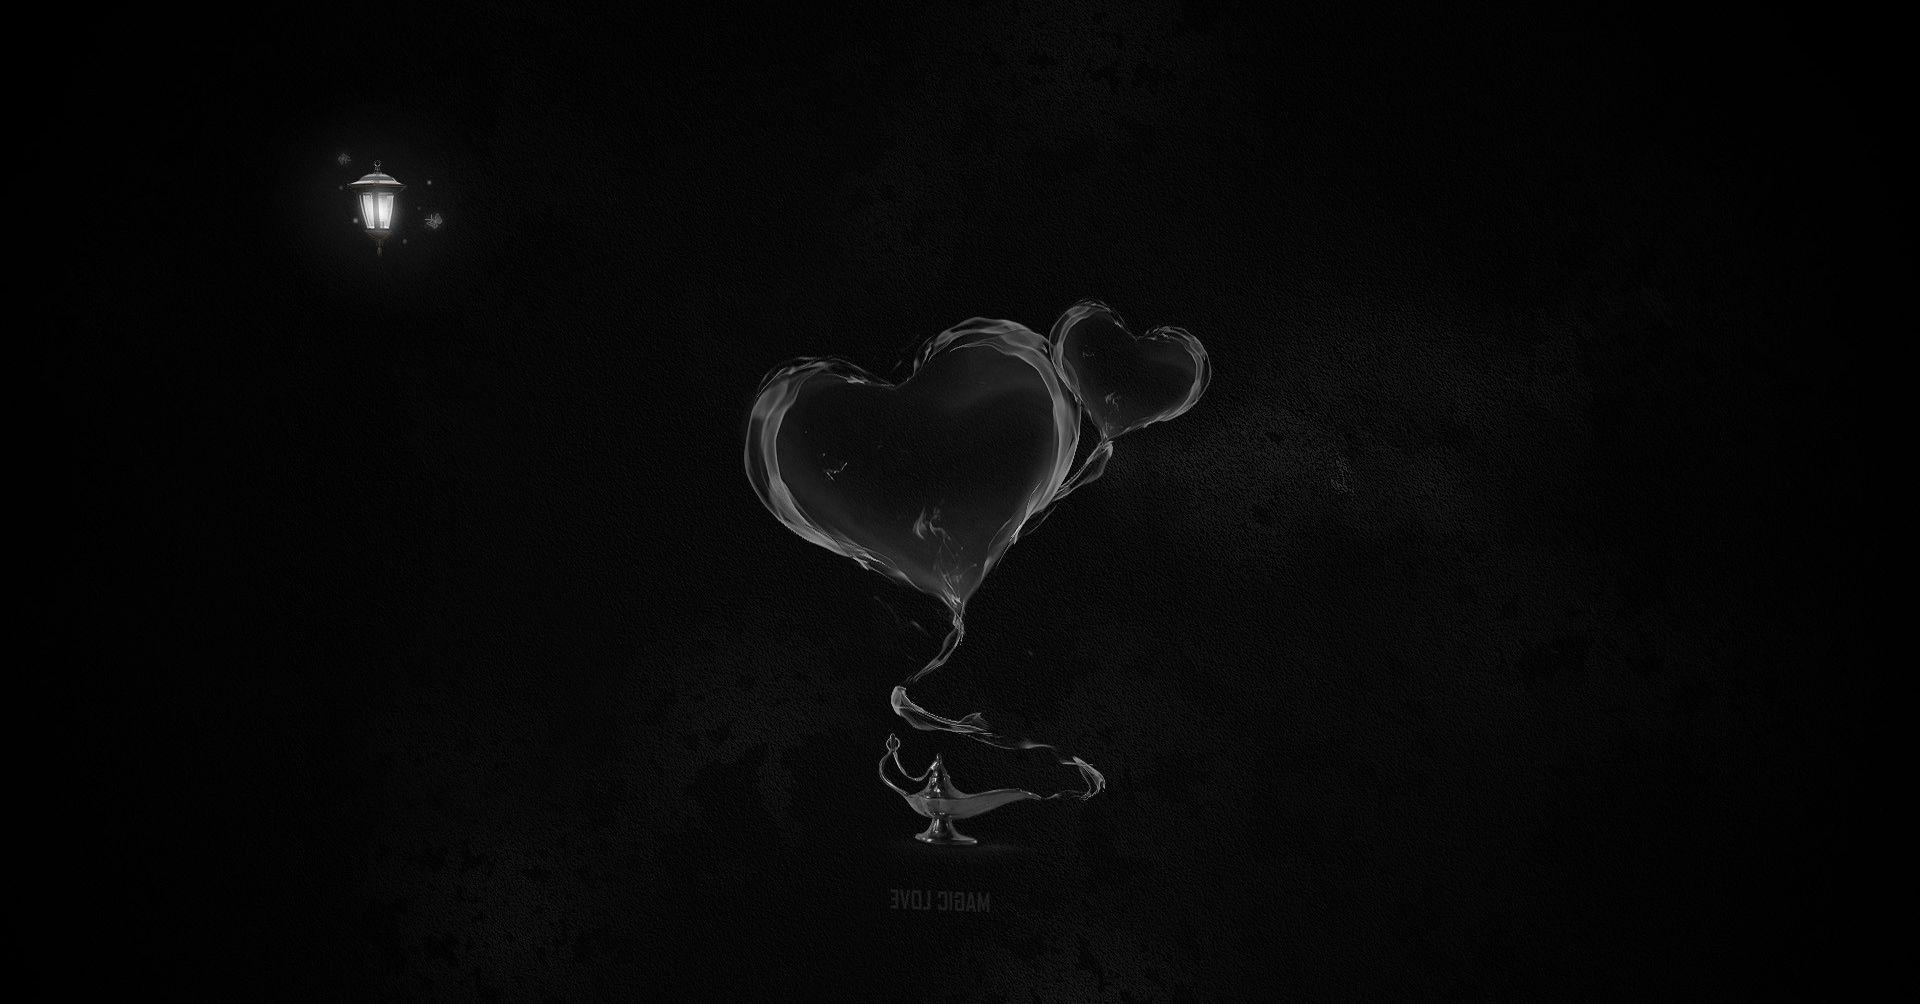 Black Heart Wallpapers Wallpaper Cave